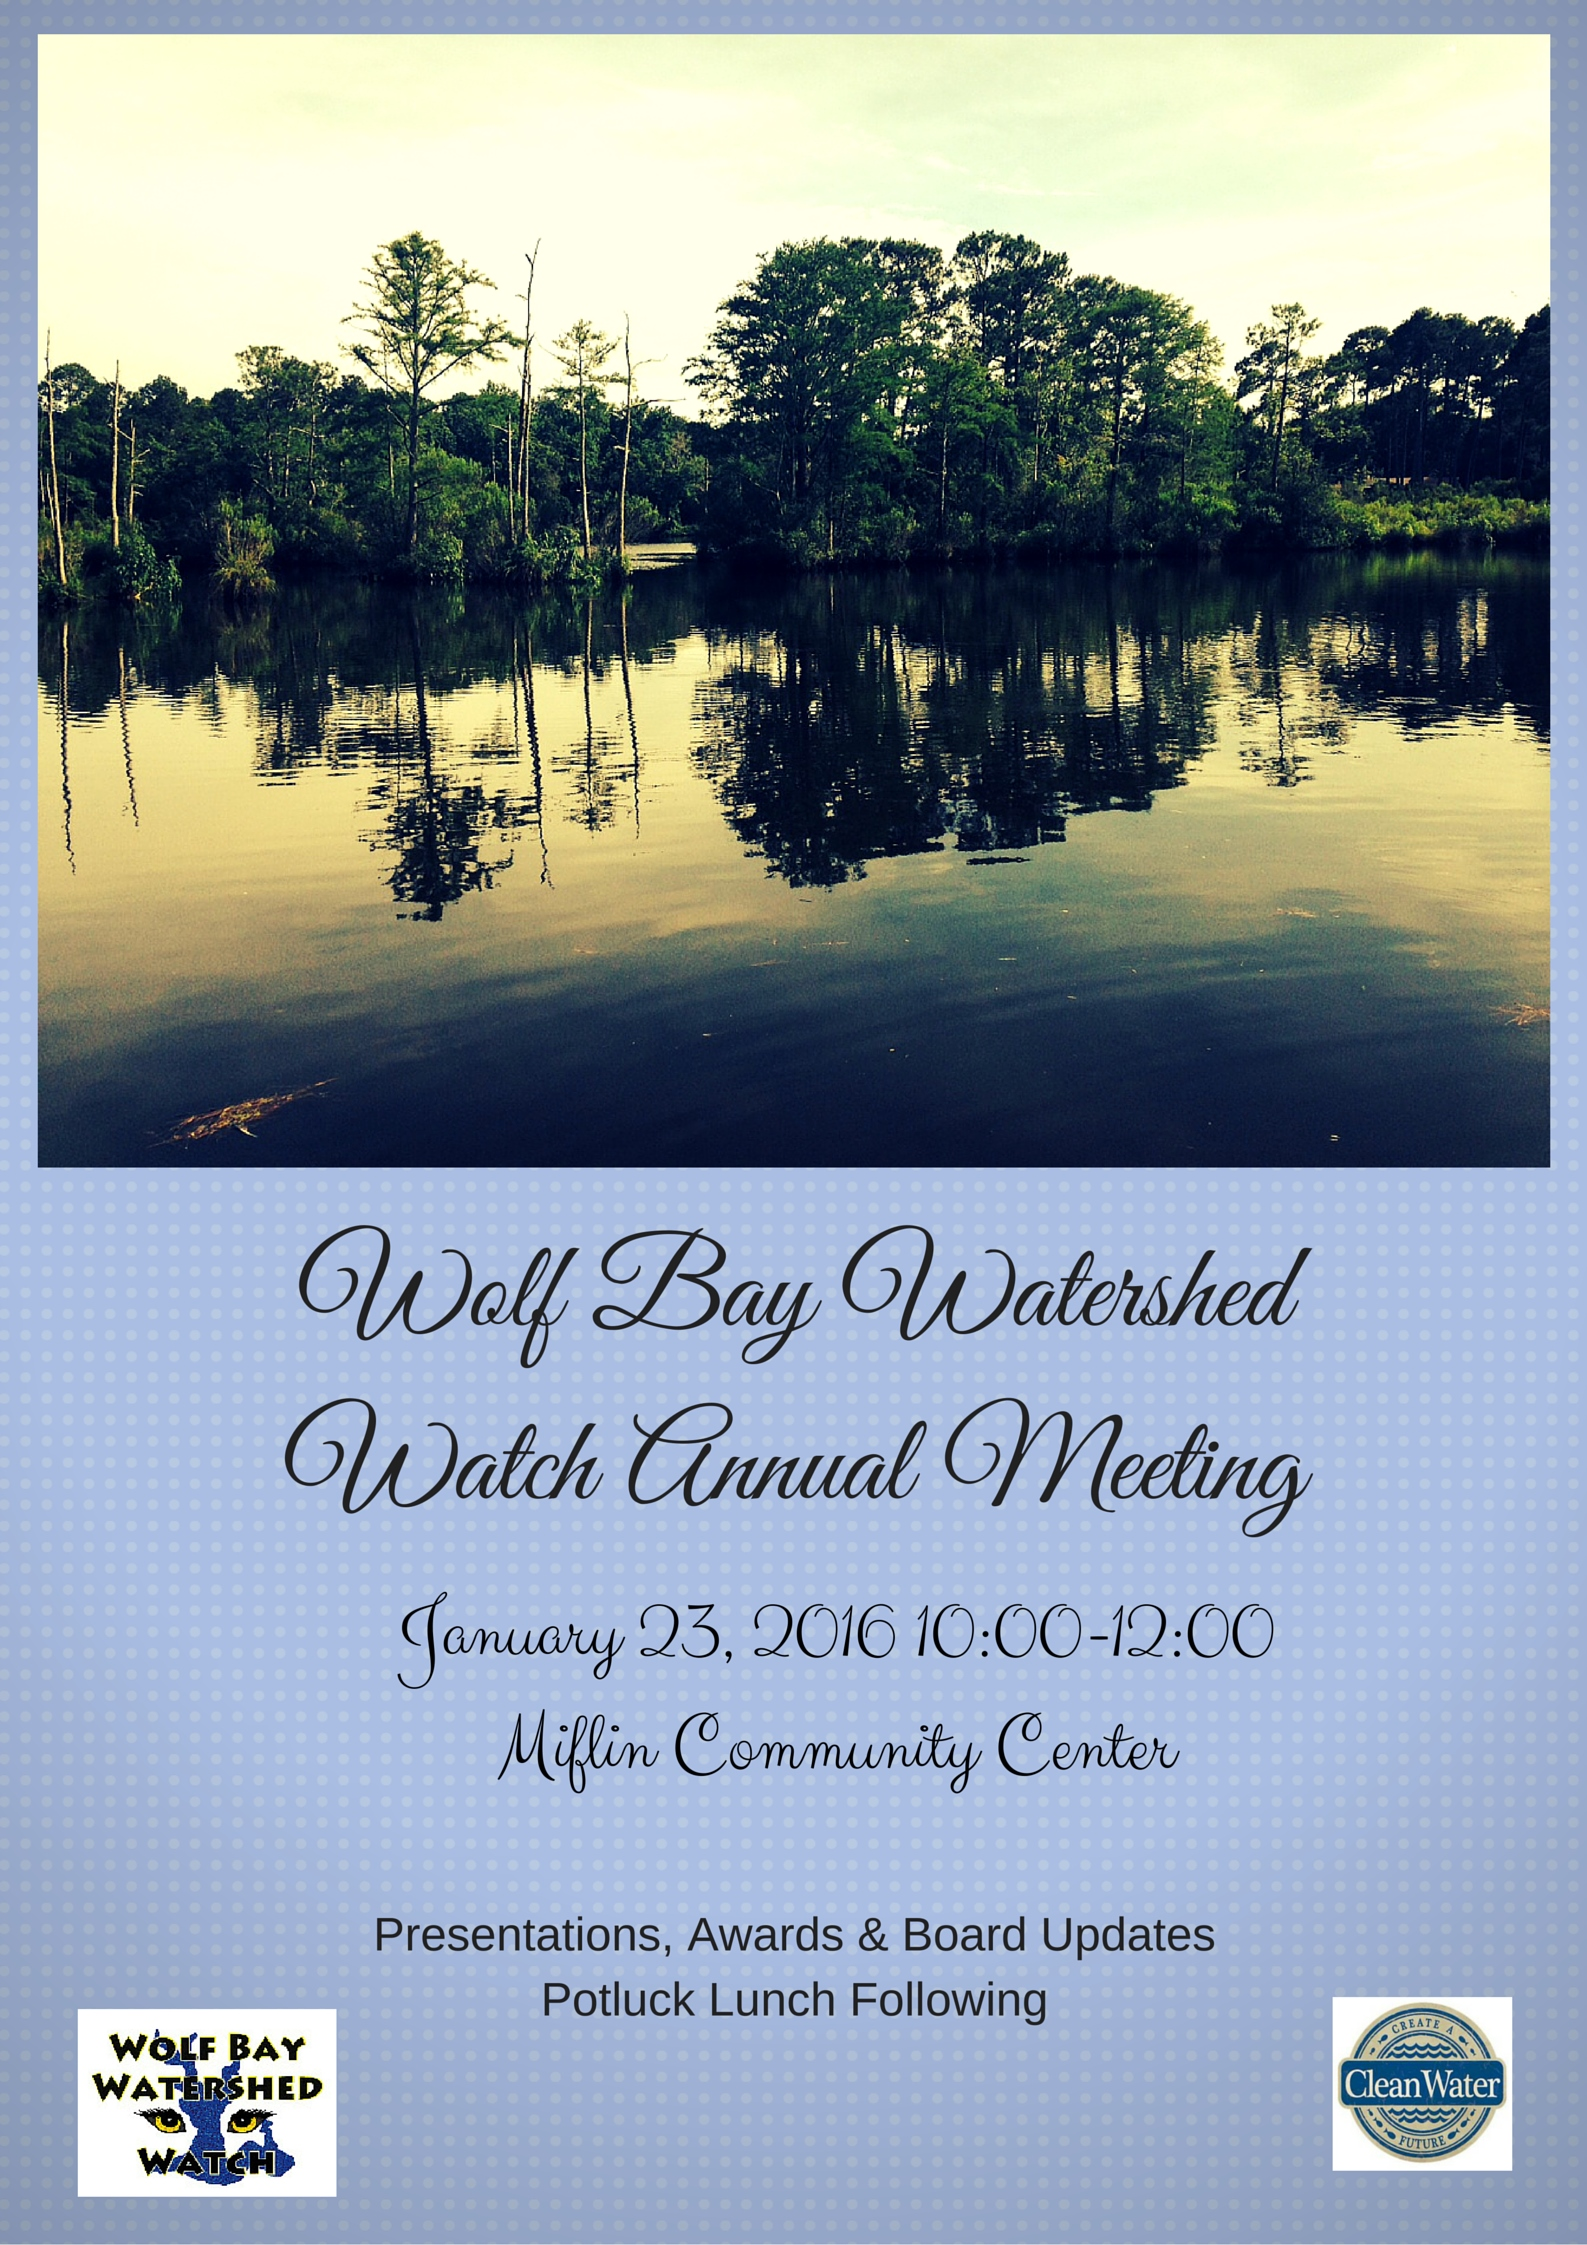 Wolf Bay Watershed WatchAnnual MeetingJanuary 23, 201610-00 AM - 12-00 PMMiflin Community Center (3)